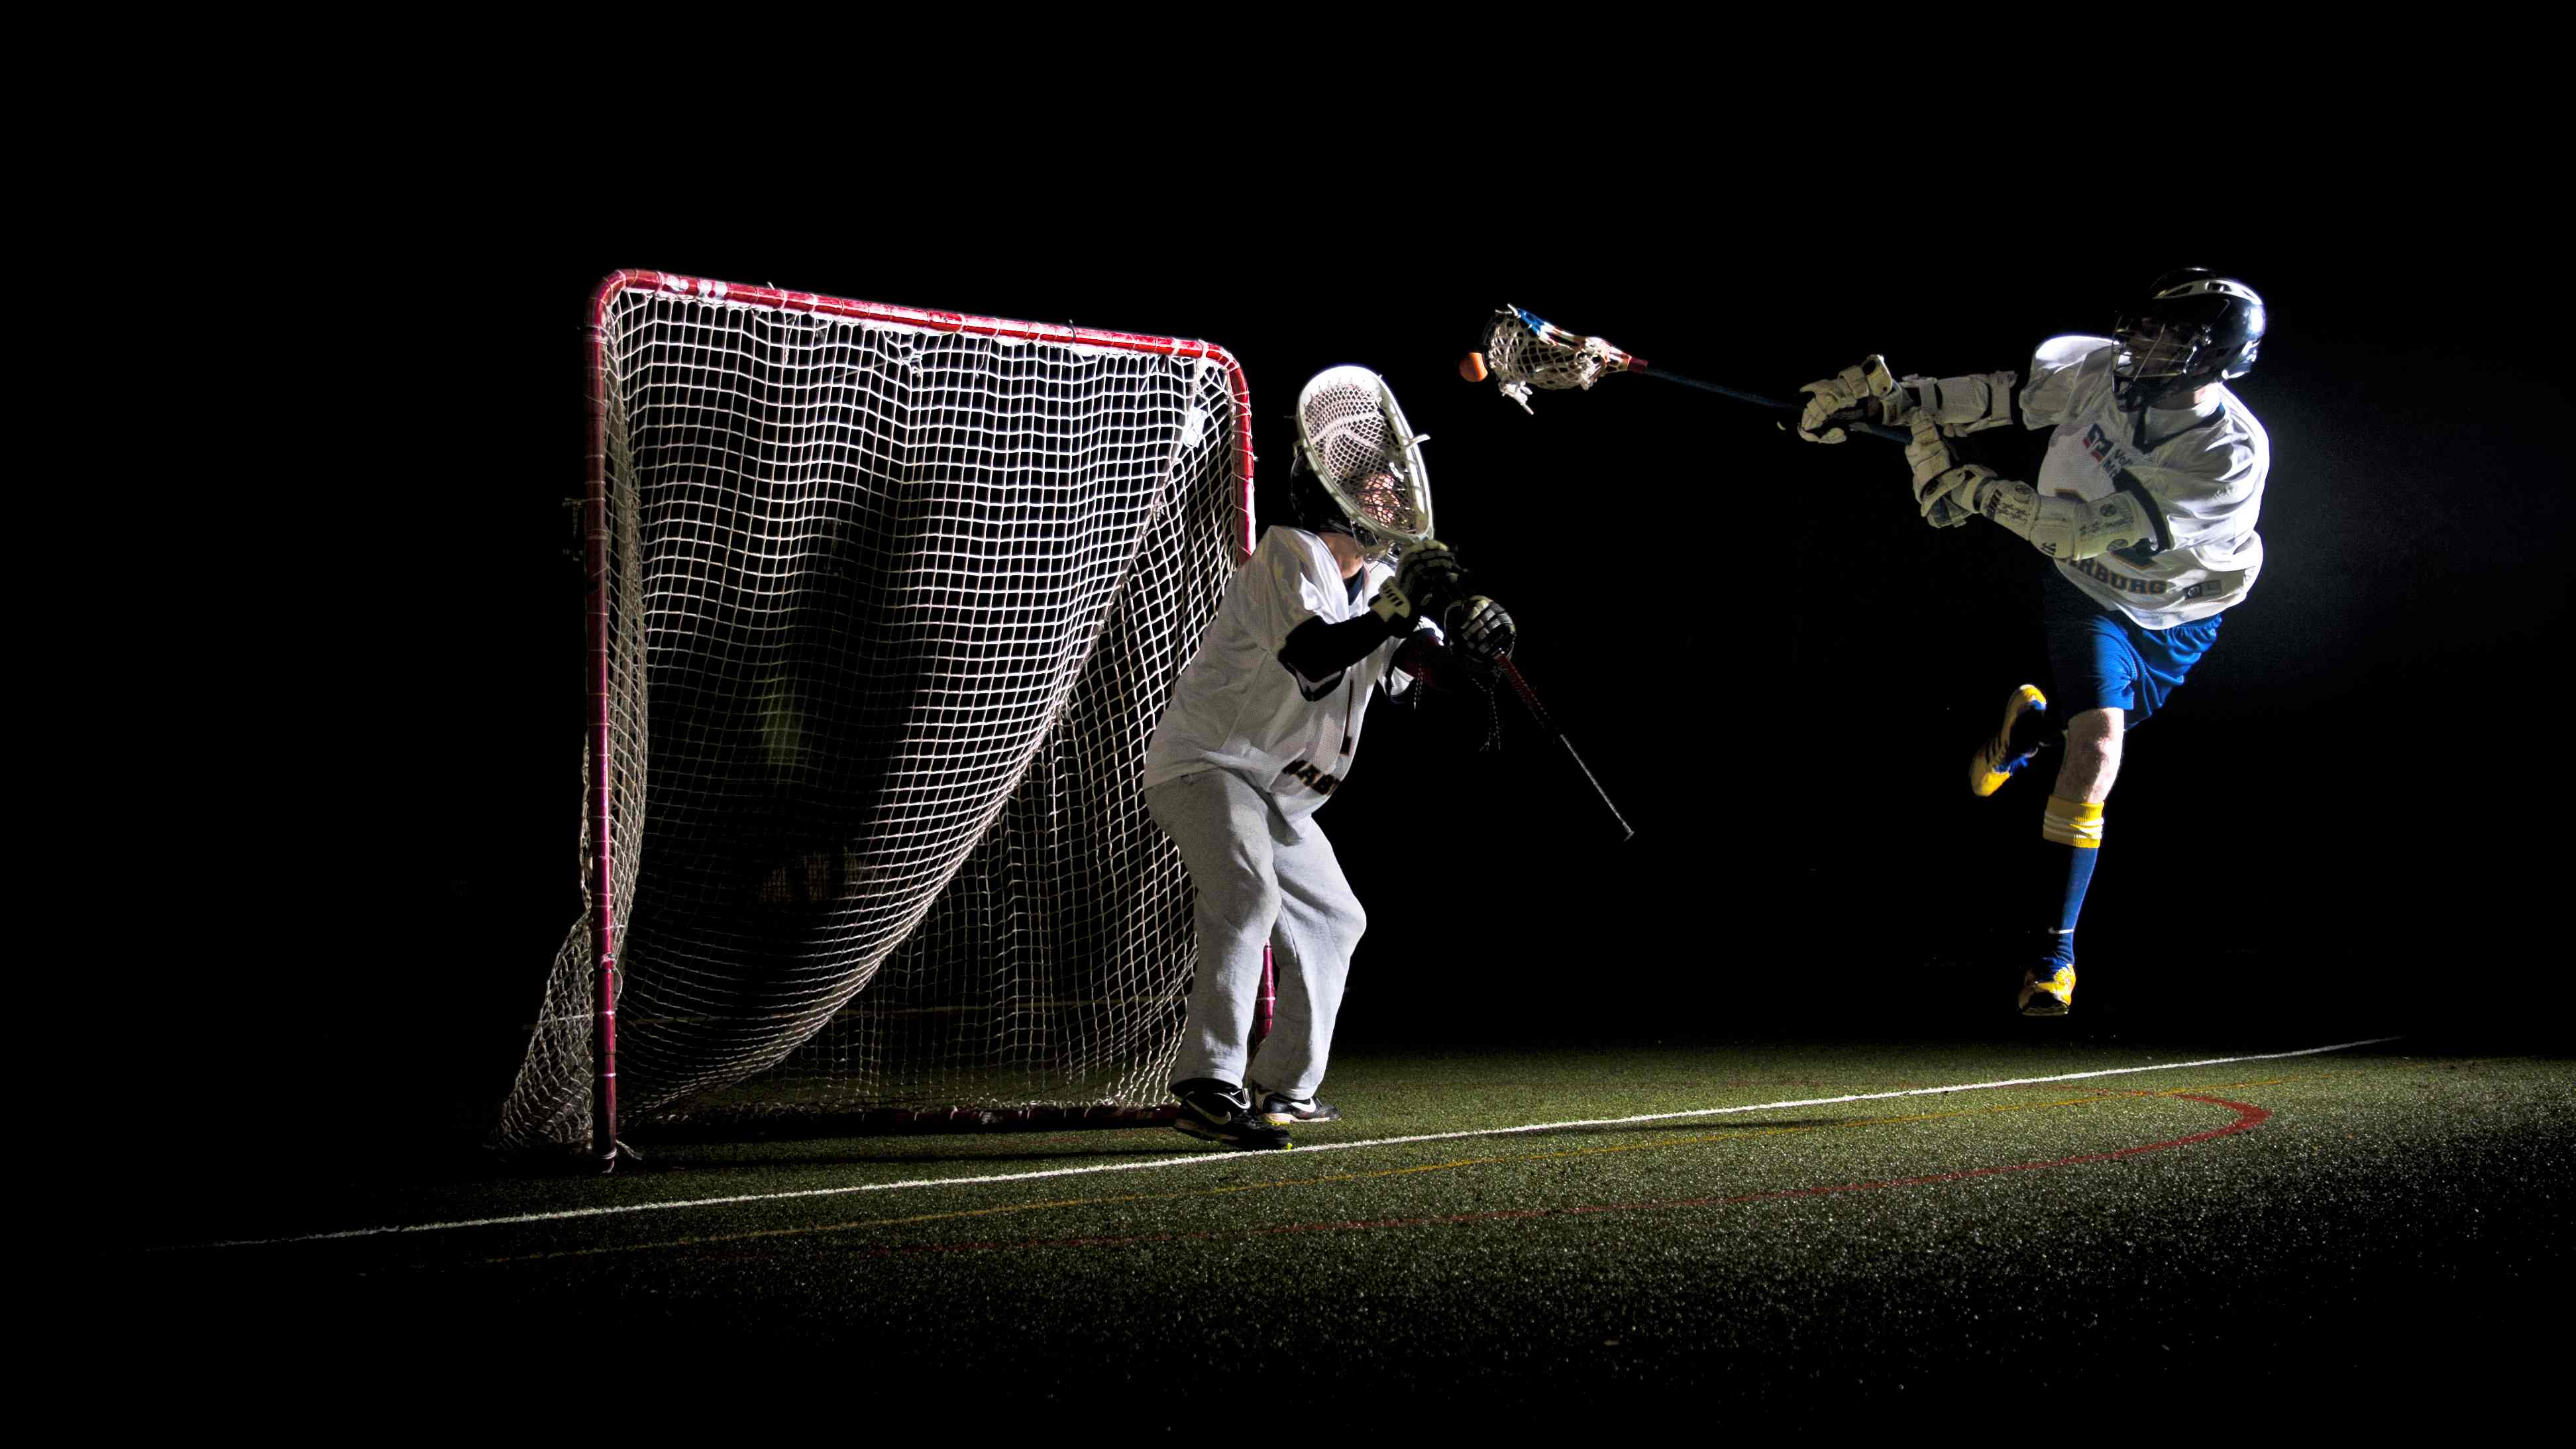 cool lacrosse wallpapers lax - photo #37